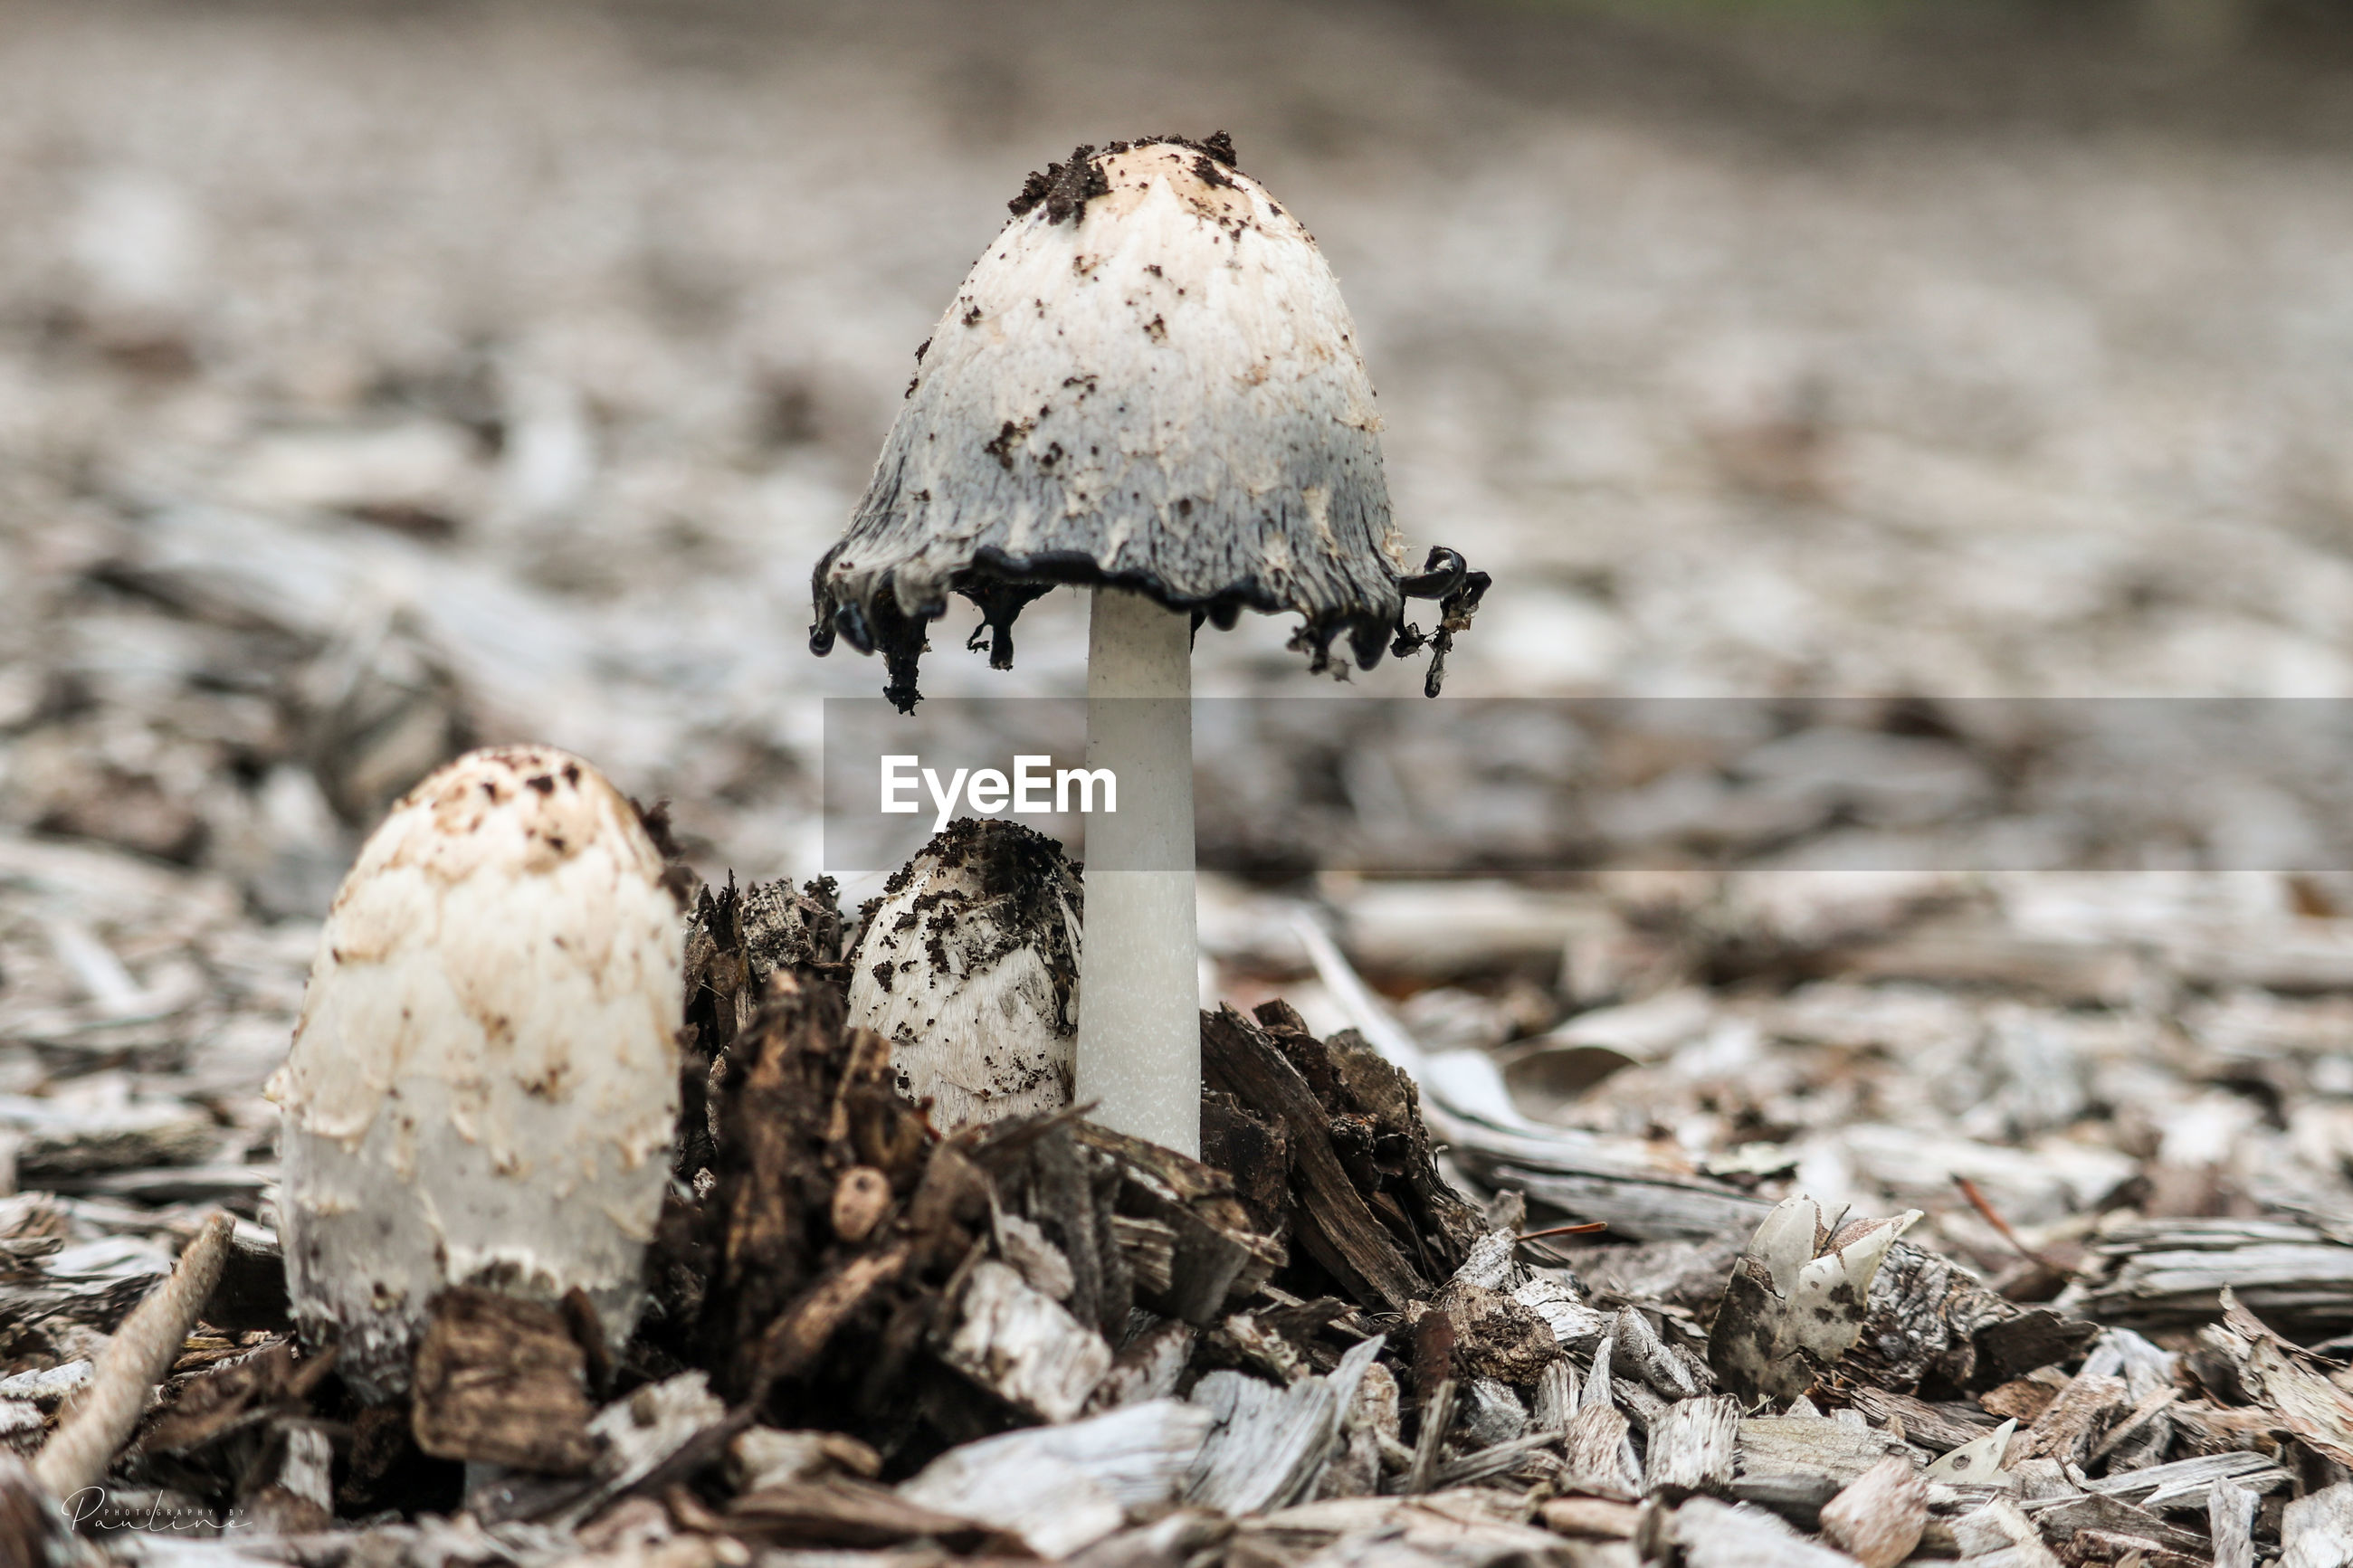 CLOSE-UP OF MUSHROOM GROWING